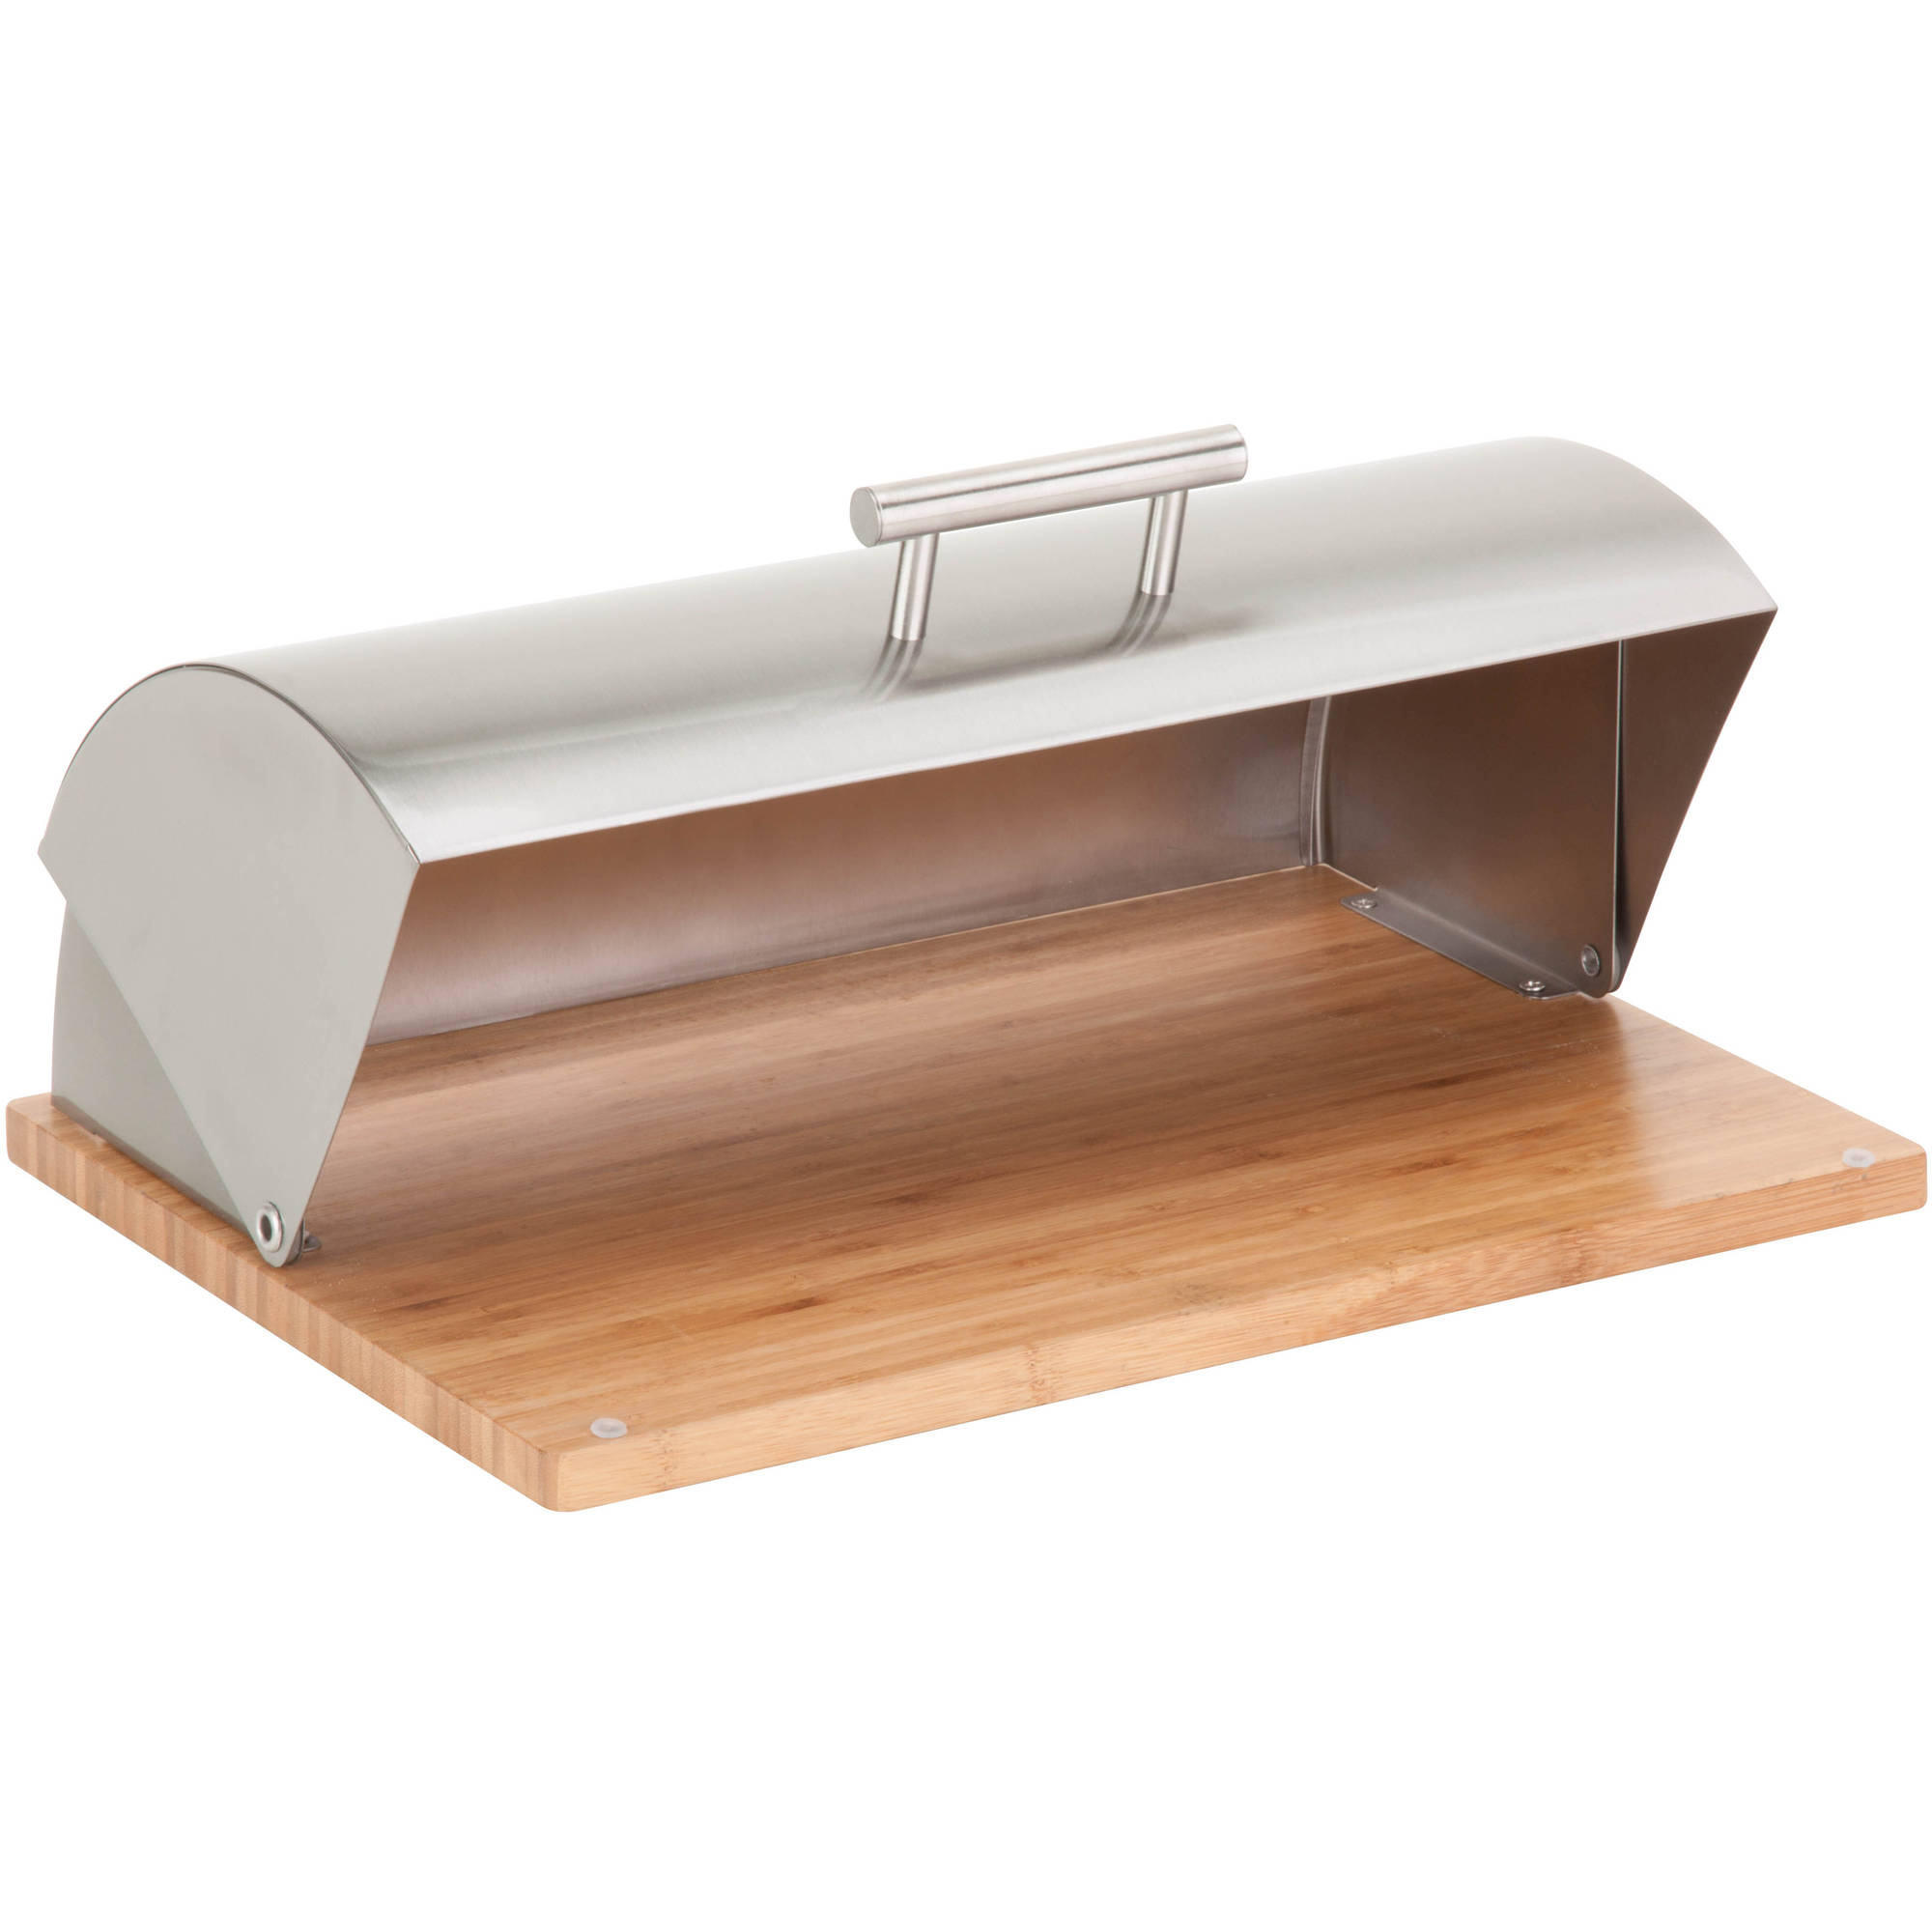 Tin bread box drawer insert - Better Homes And Gardens Stainless Steel Bread Box